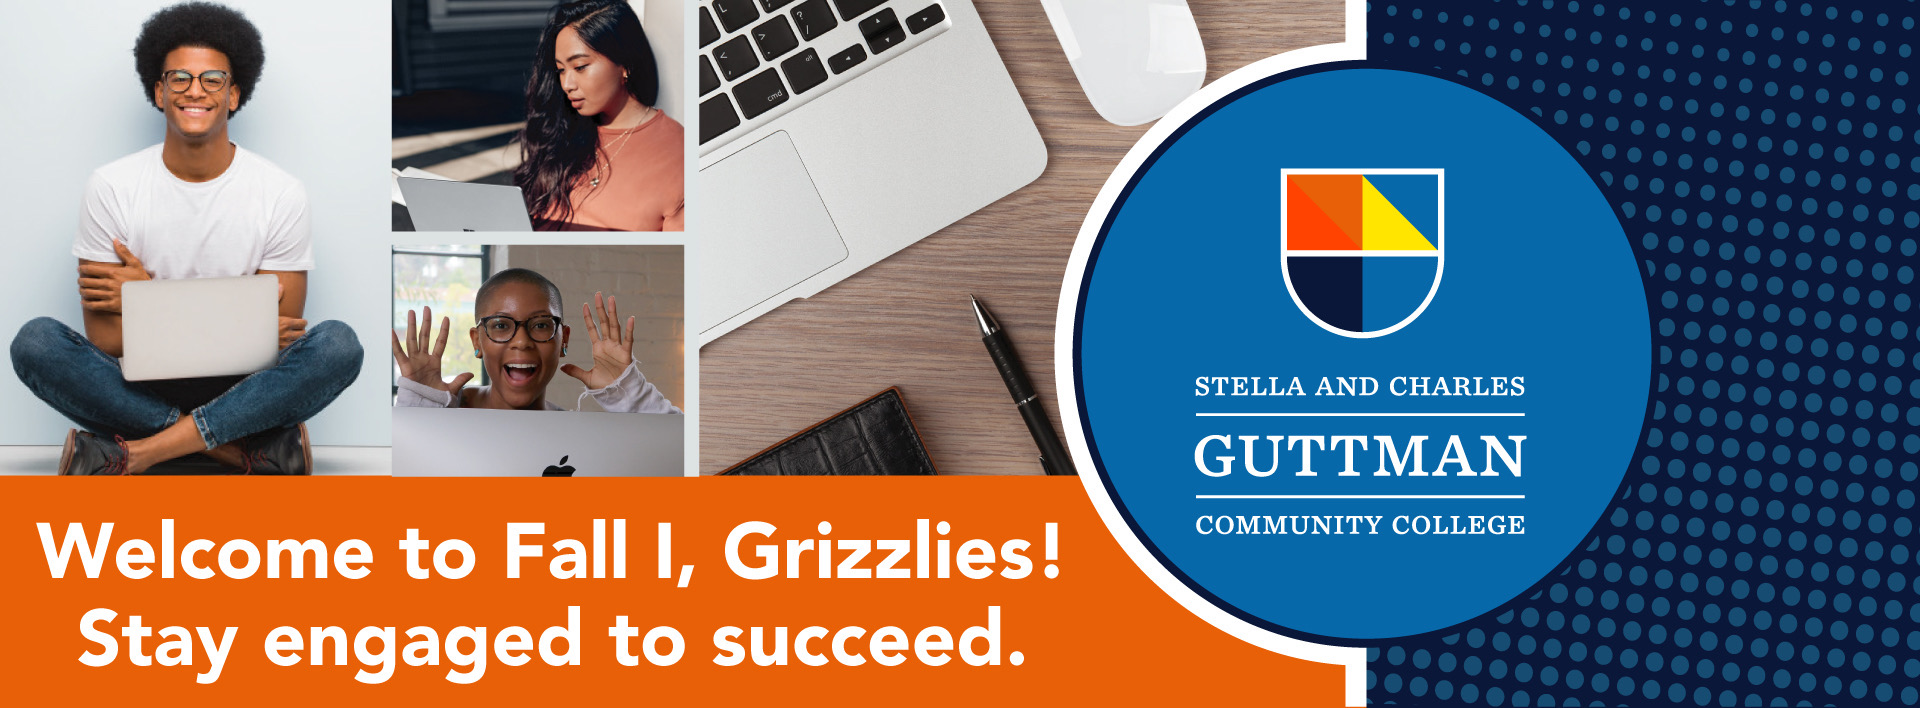 Welcome to Fall I, Grizzlies! Stay engaged to succeed.